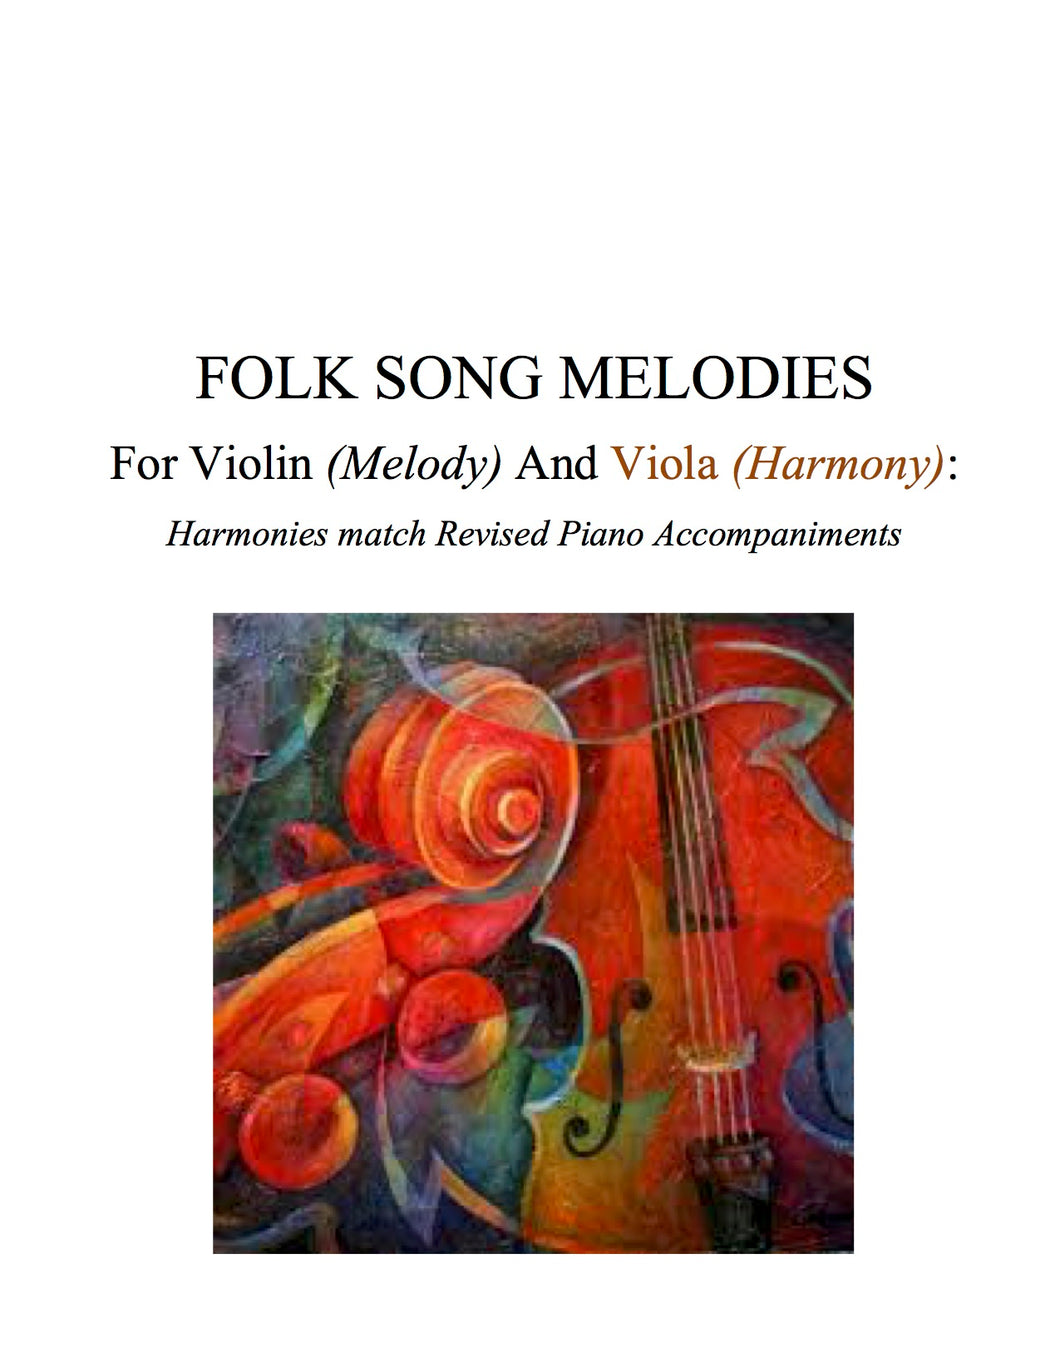 016 - Folk Song Melodies For Violin (Melody) and Viola (Harmony) Twinkle - Etude